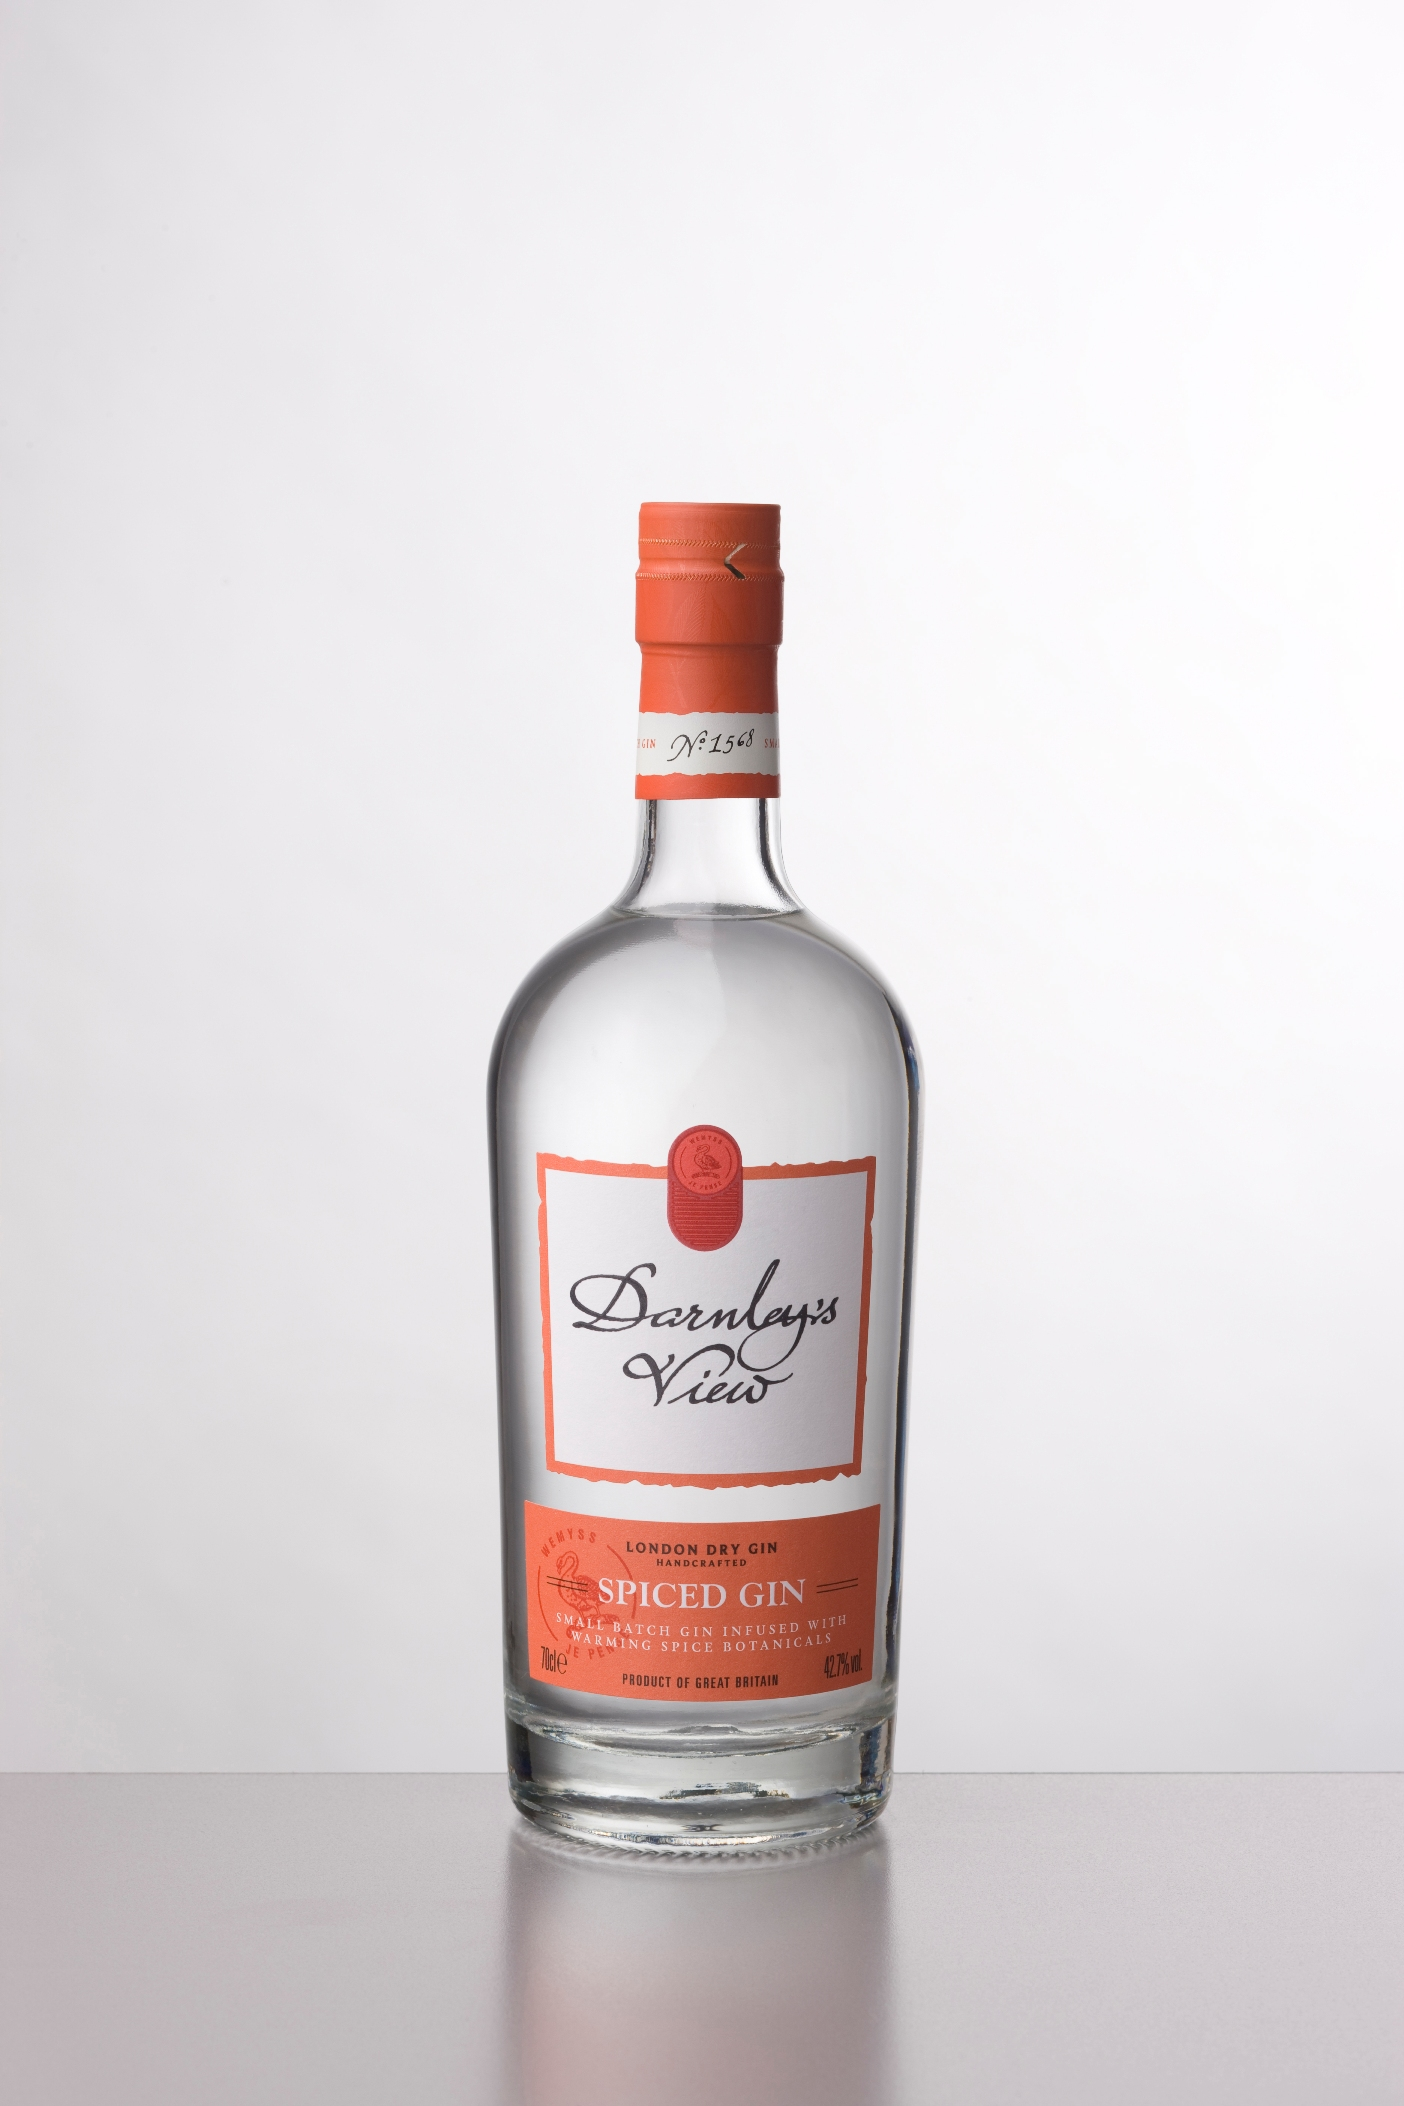 Darnley's View Pioneering In Spiced Gin